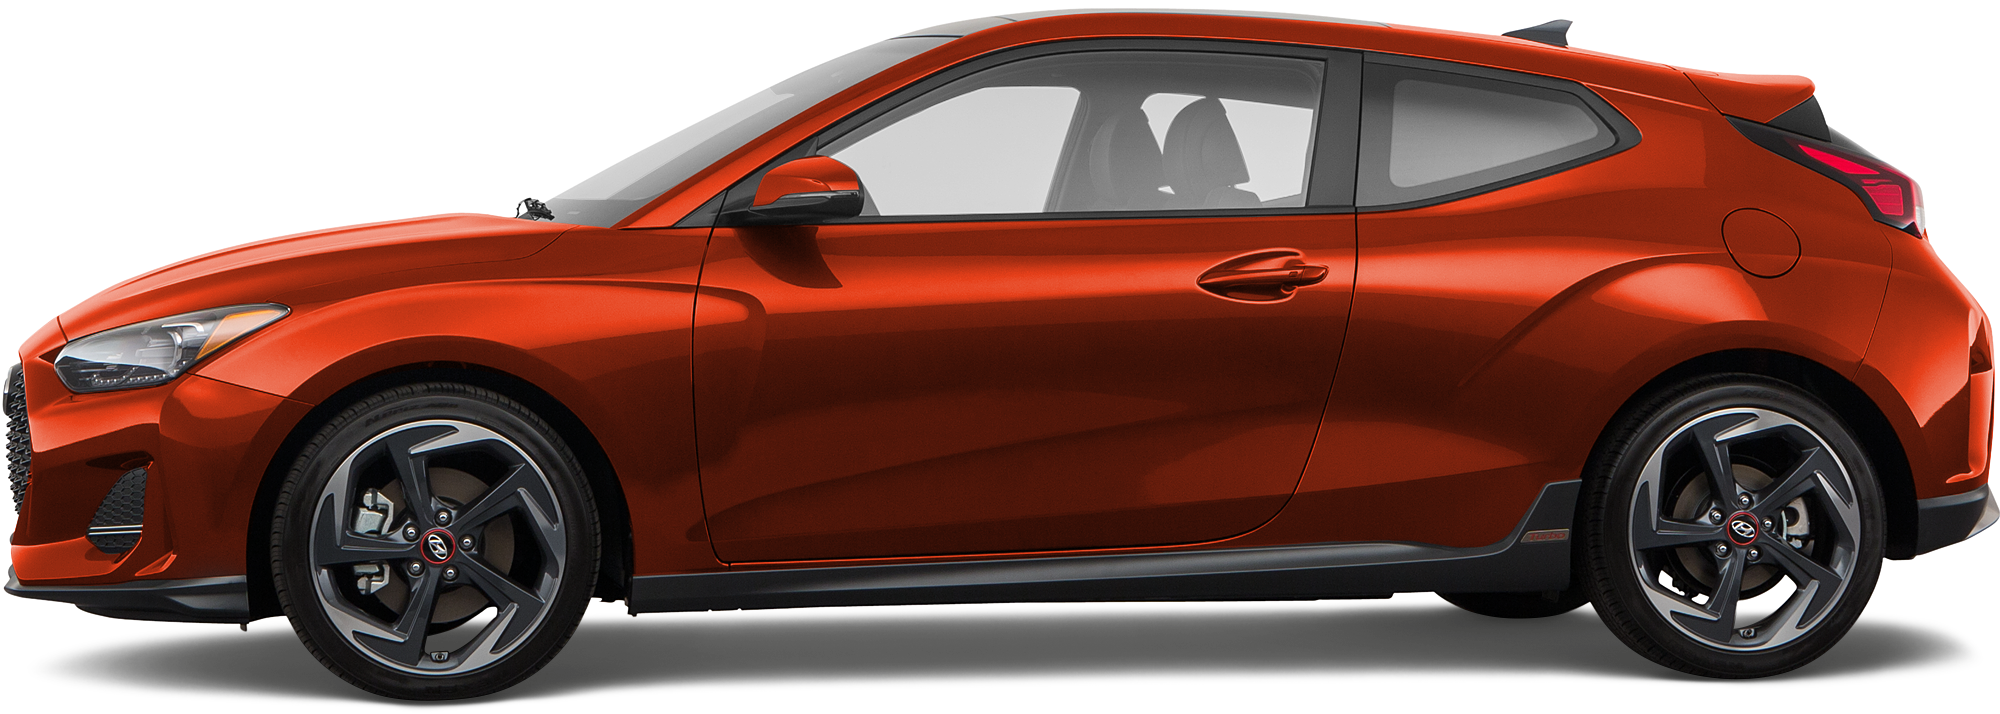 2020 Hyundai Veloster Hatchback Turbo